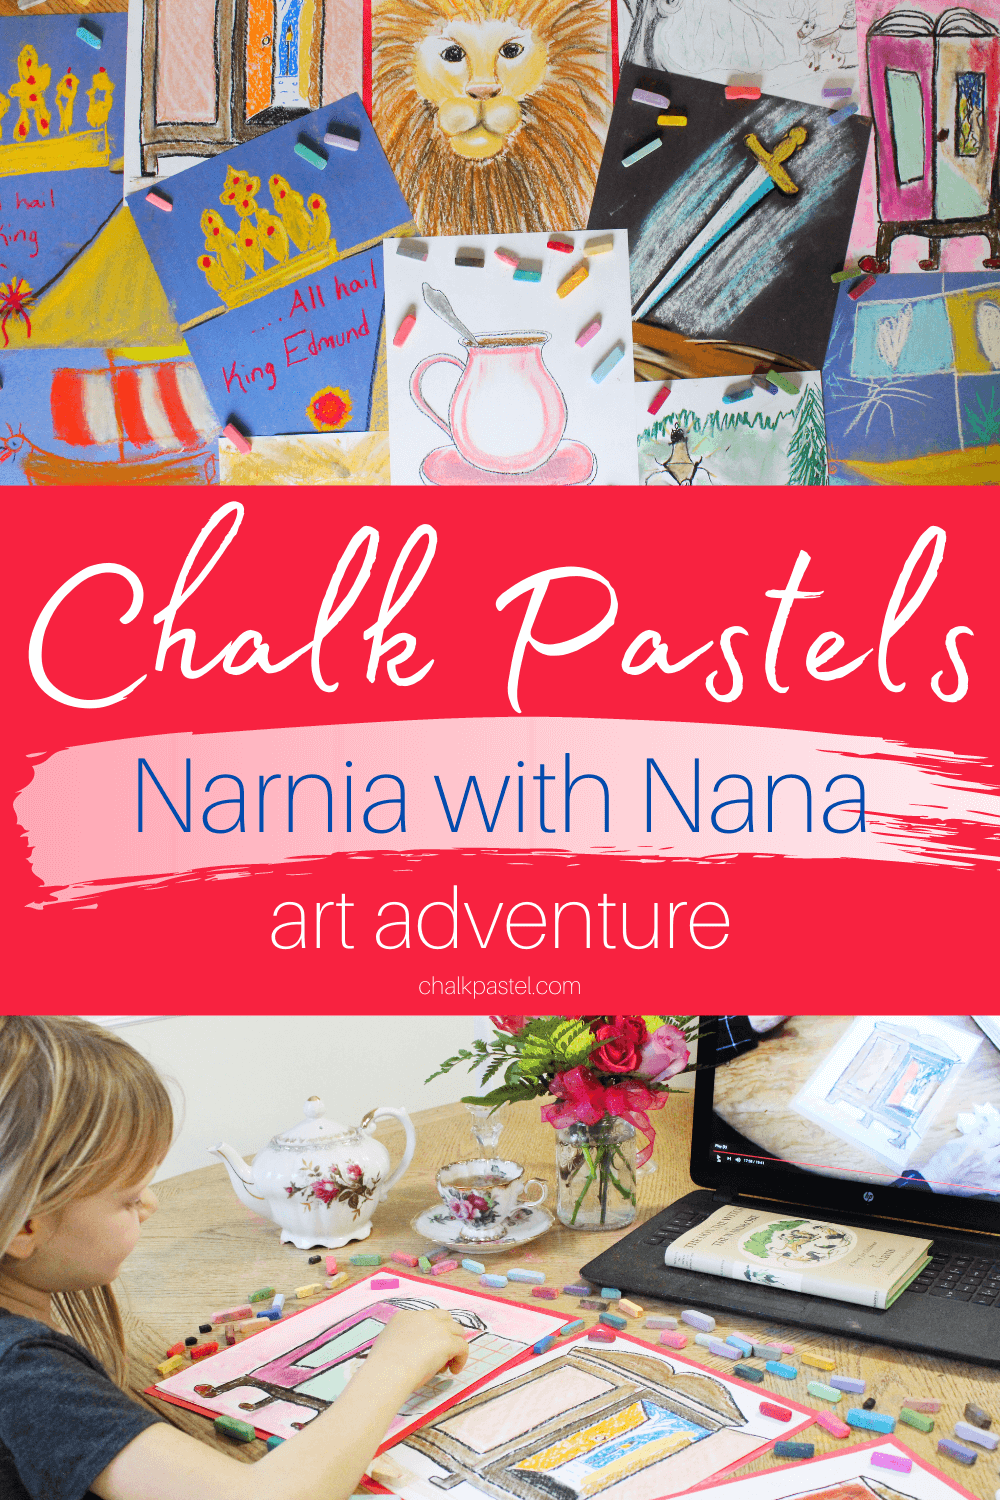 Chalk Pastels Narnia with Nana Art Adventure: Are your kid's ready for an epic art journey? Then, take a trip with chalk pastels Narnia with Nana art adventure! #NarniawithNana #Narnia #Narniaart #Narniachalppastels